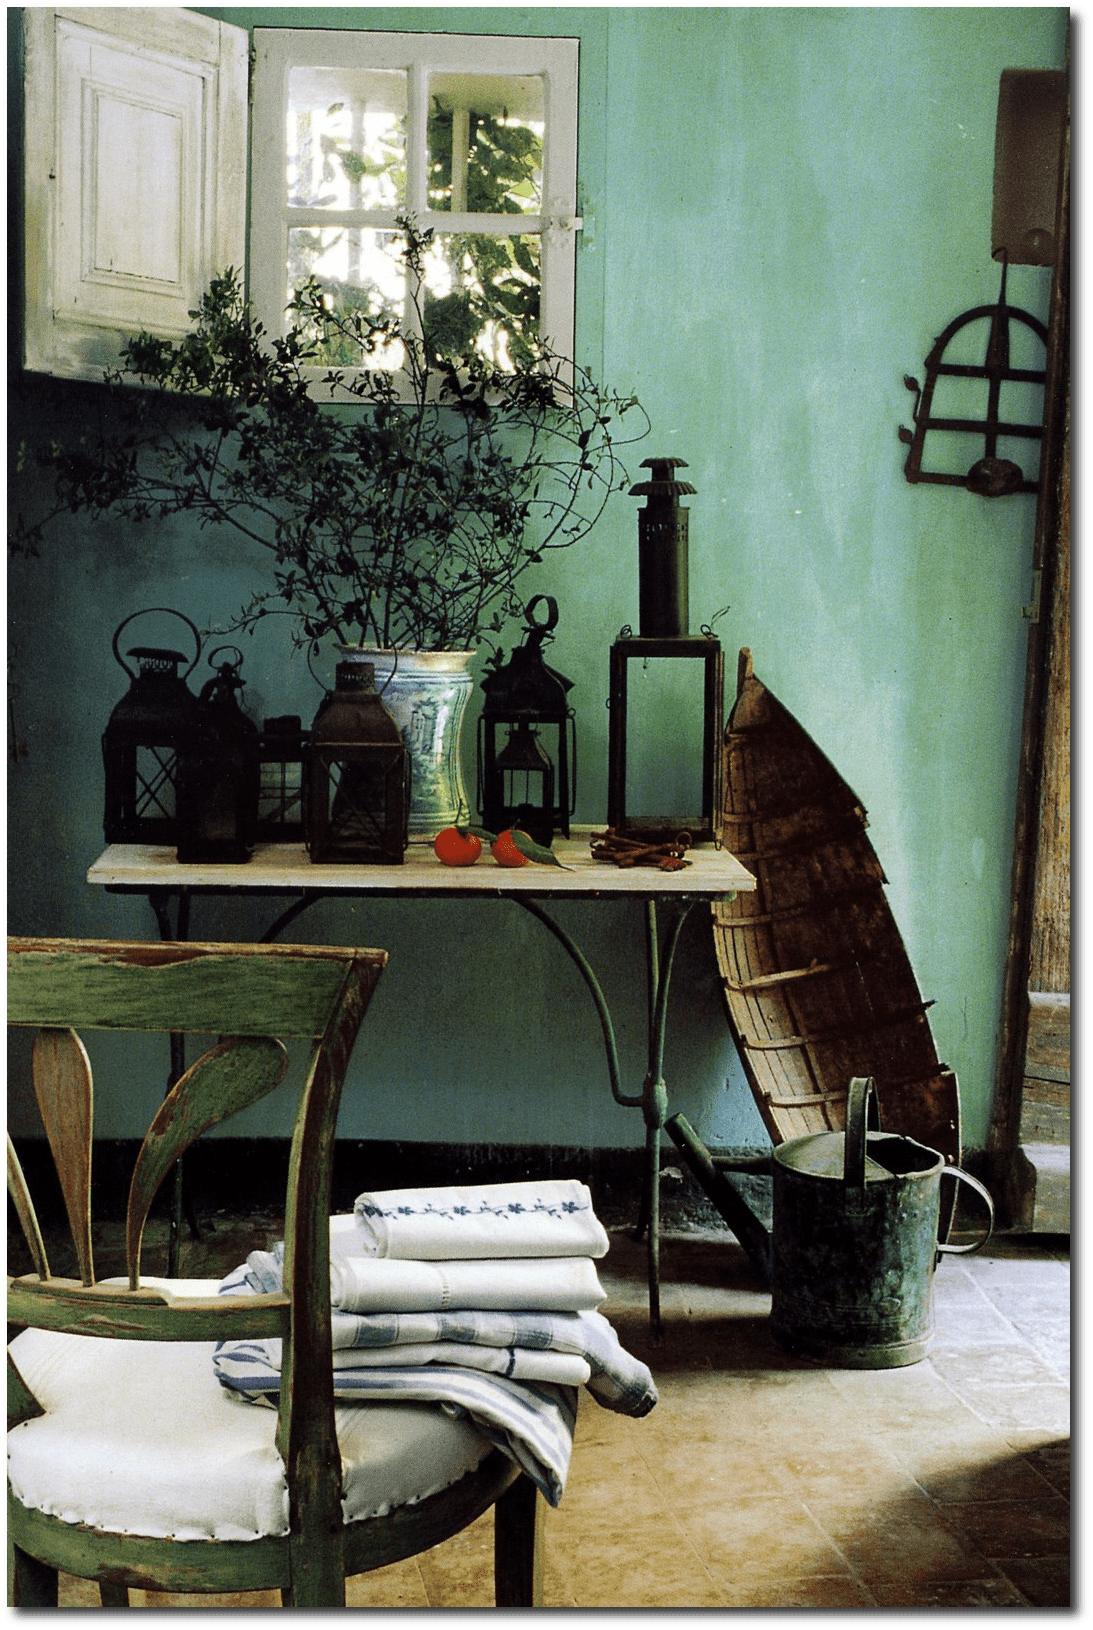 Frederic mechiche 39 s house3 for How to paint a wall with chalk paint